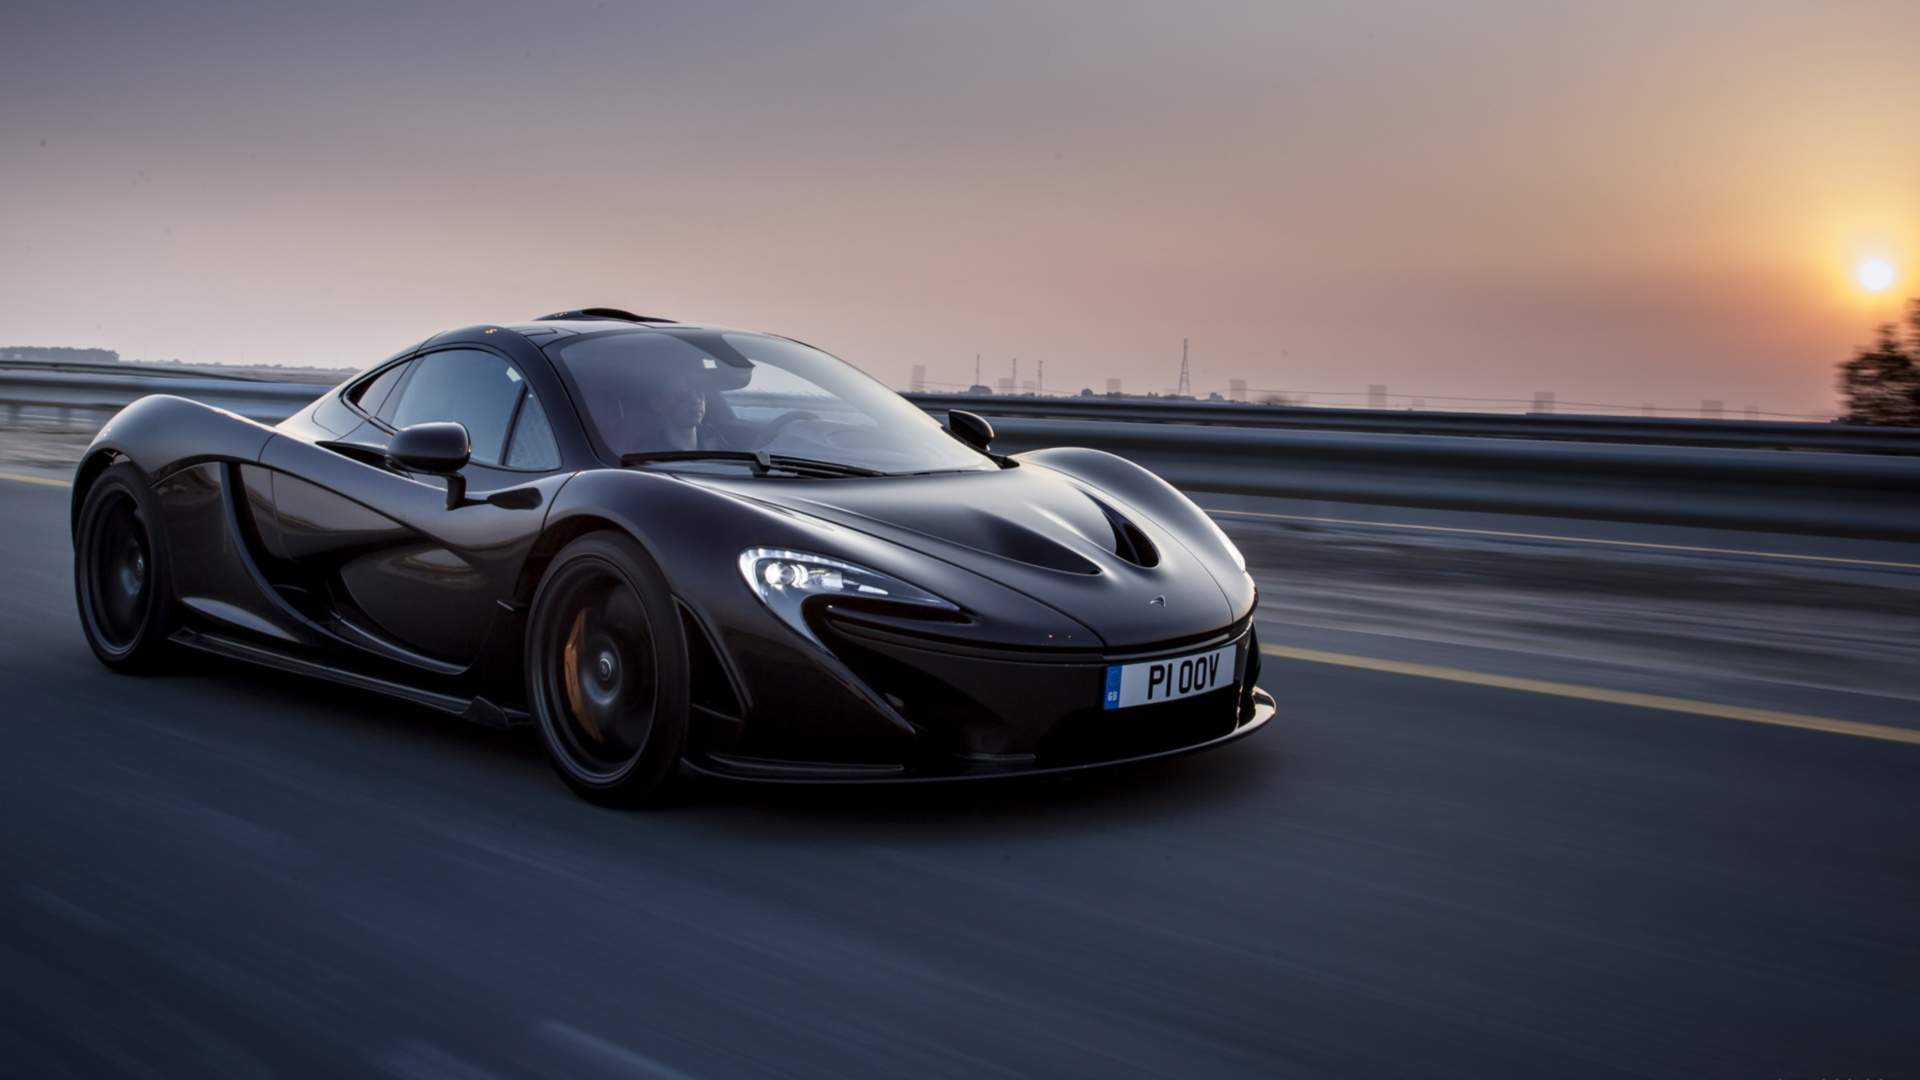 McLaren P1 Wallpaper Black - WallpaperSafari